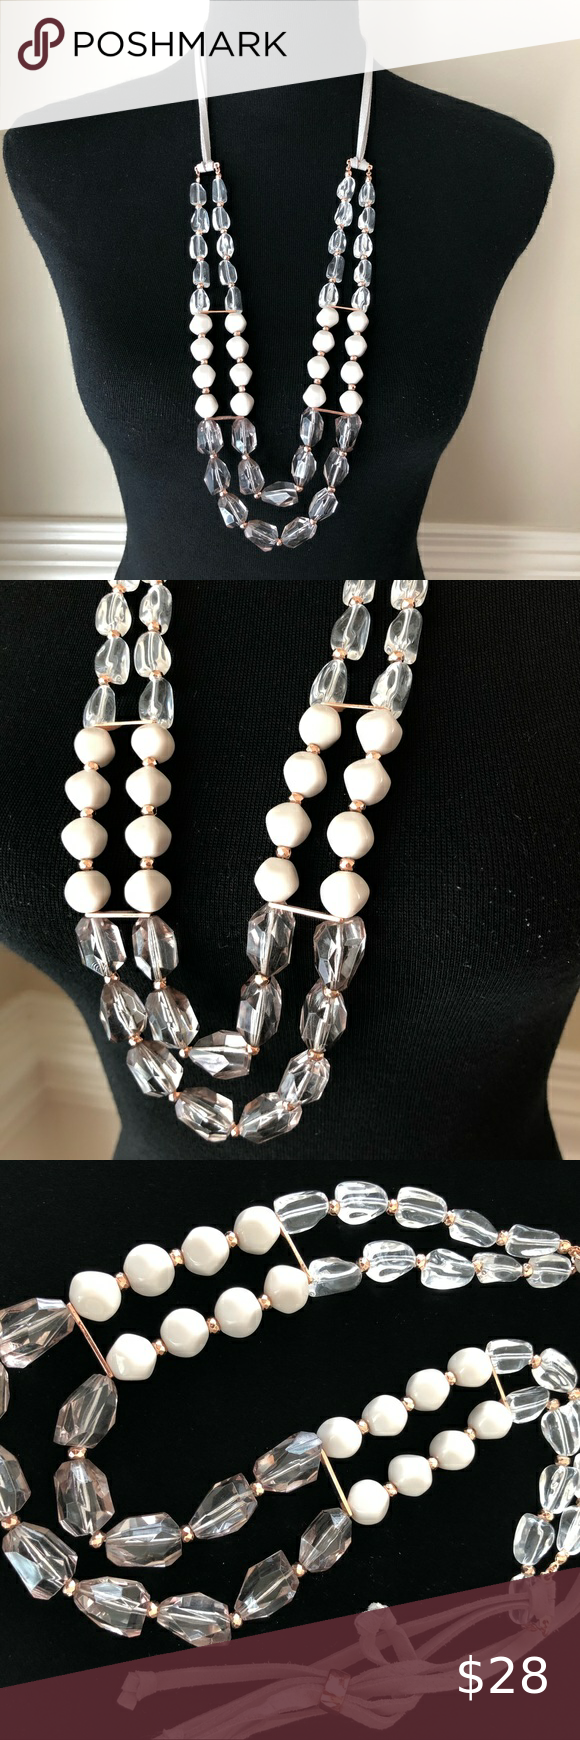 Juicy Couture Smoky Gray Fashion Necklace Double